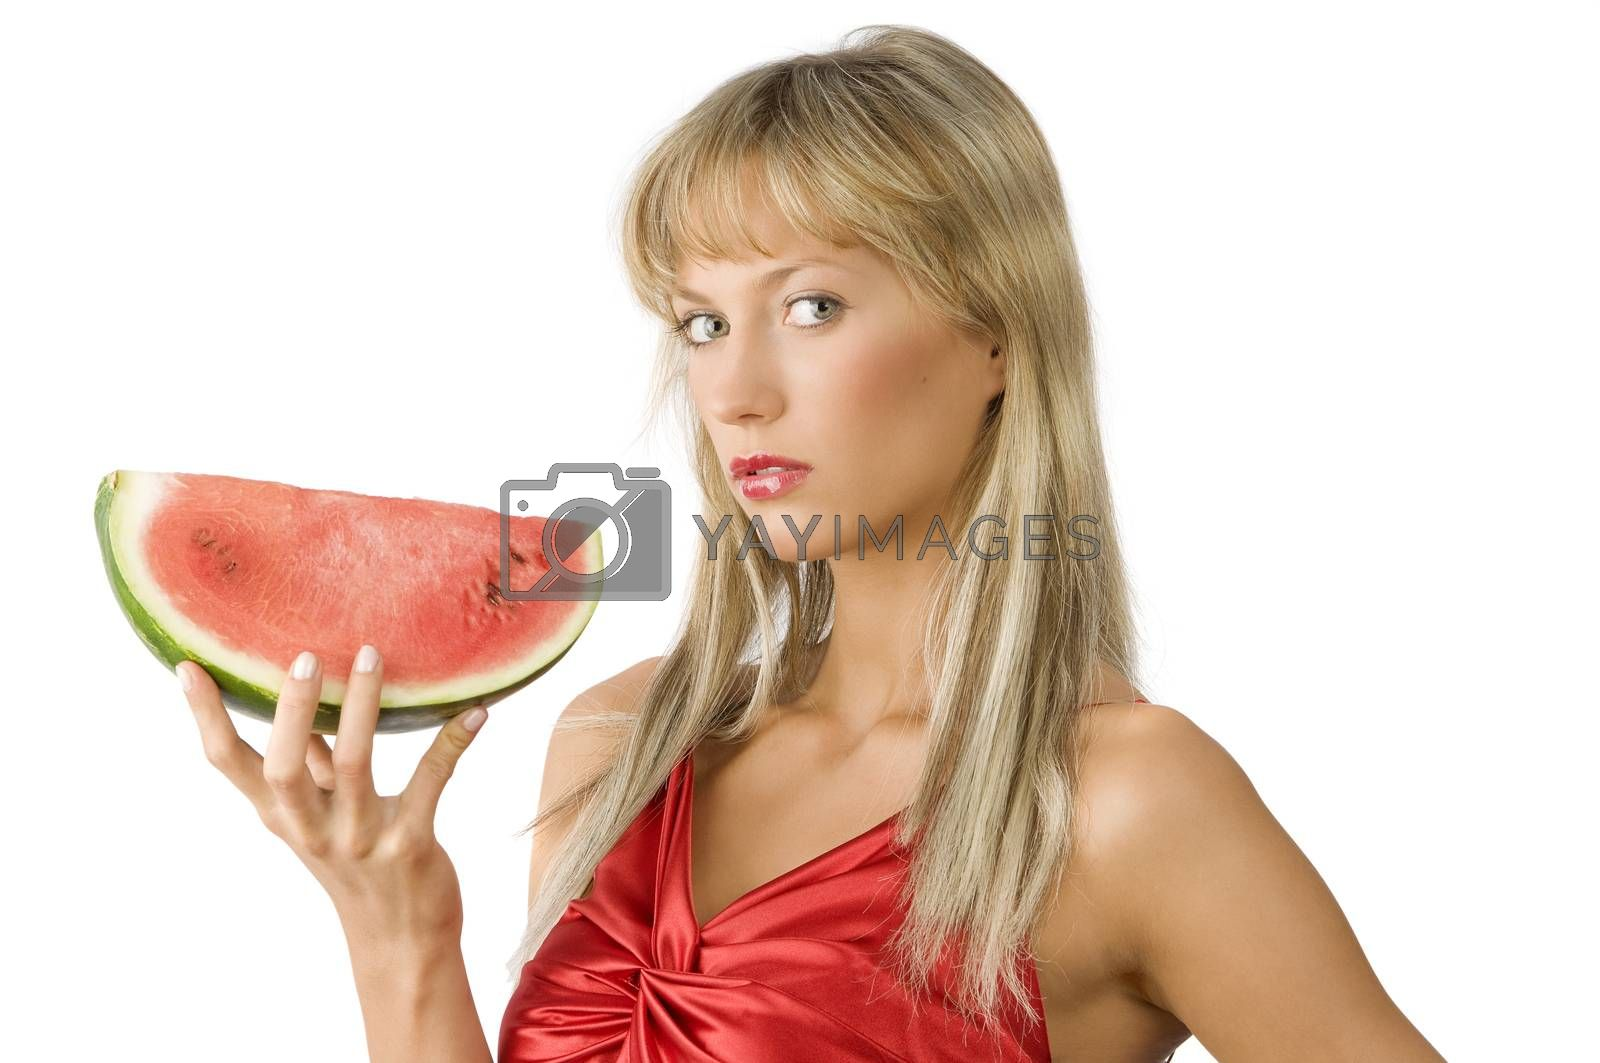 Royalty free image of the watermelon by fotoCD